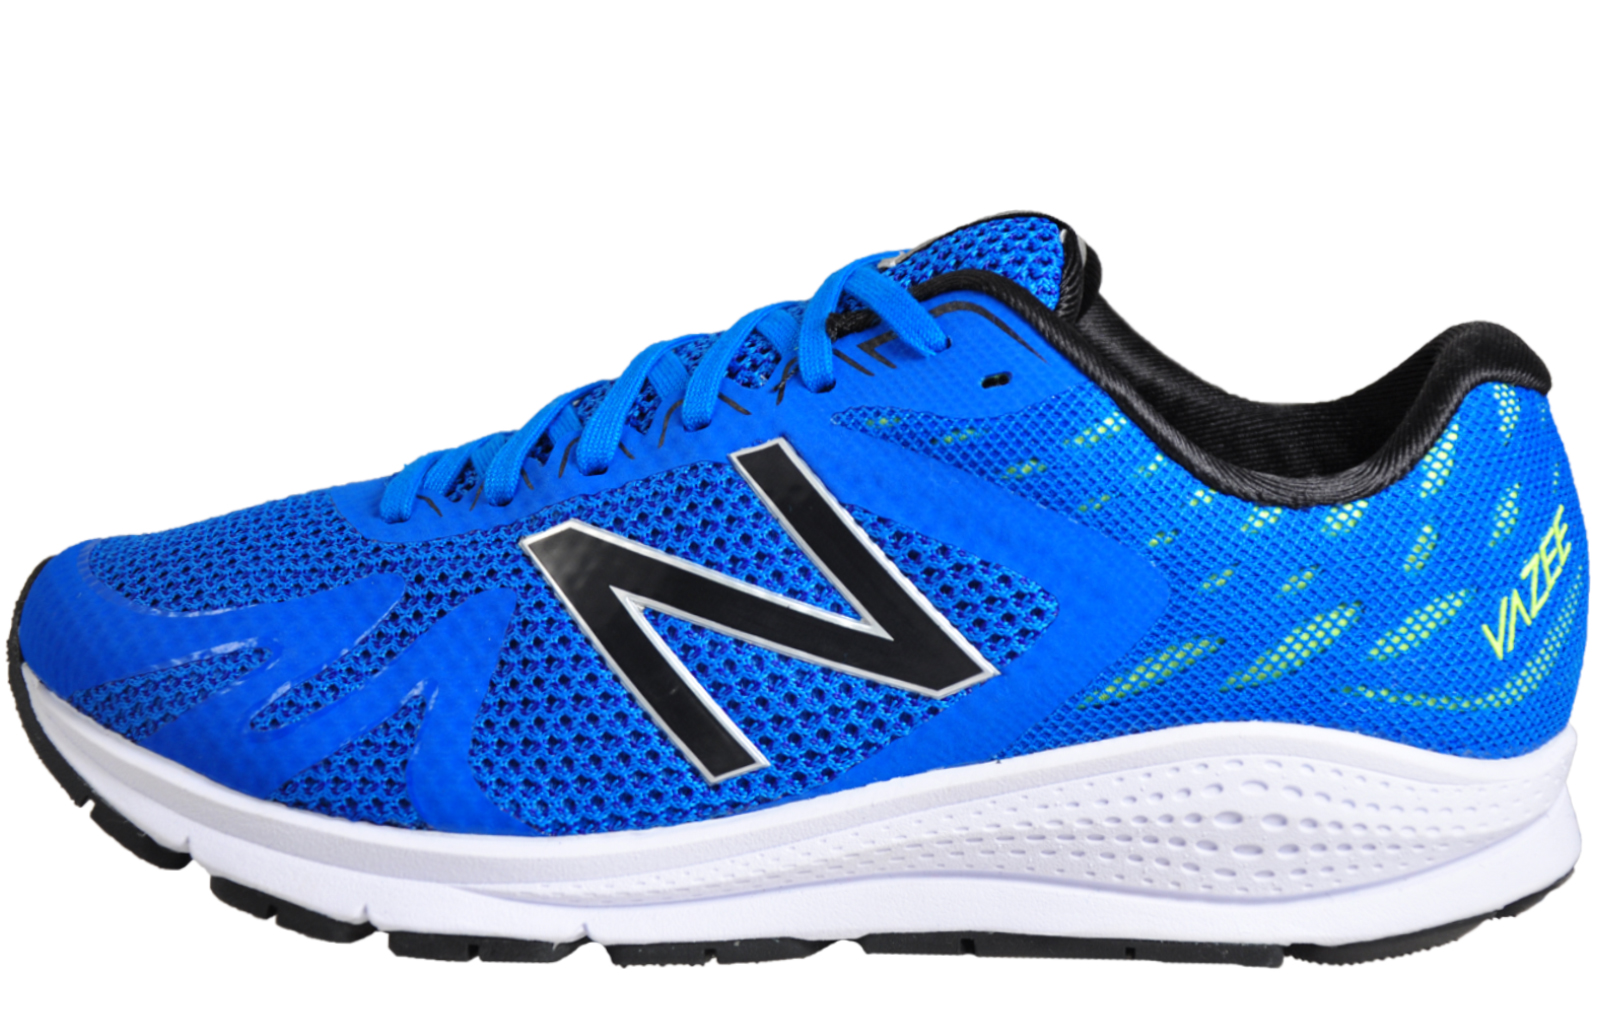 New Balance Vazee Urge Men/'s Running Shoes Fitness Gym Trainers Blue UK 8 Only